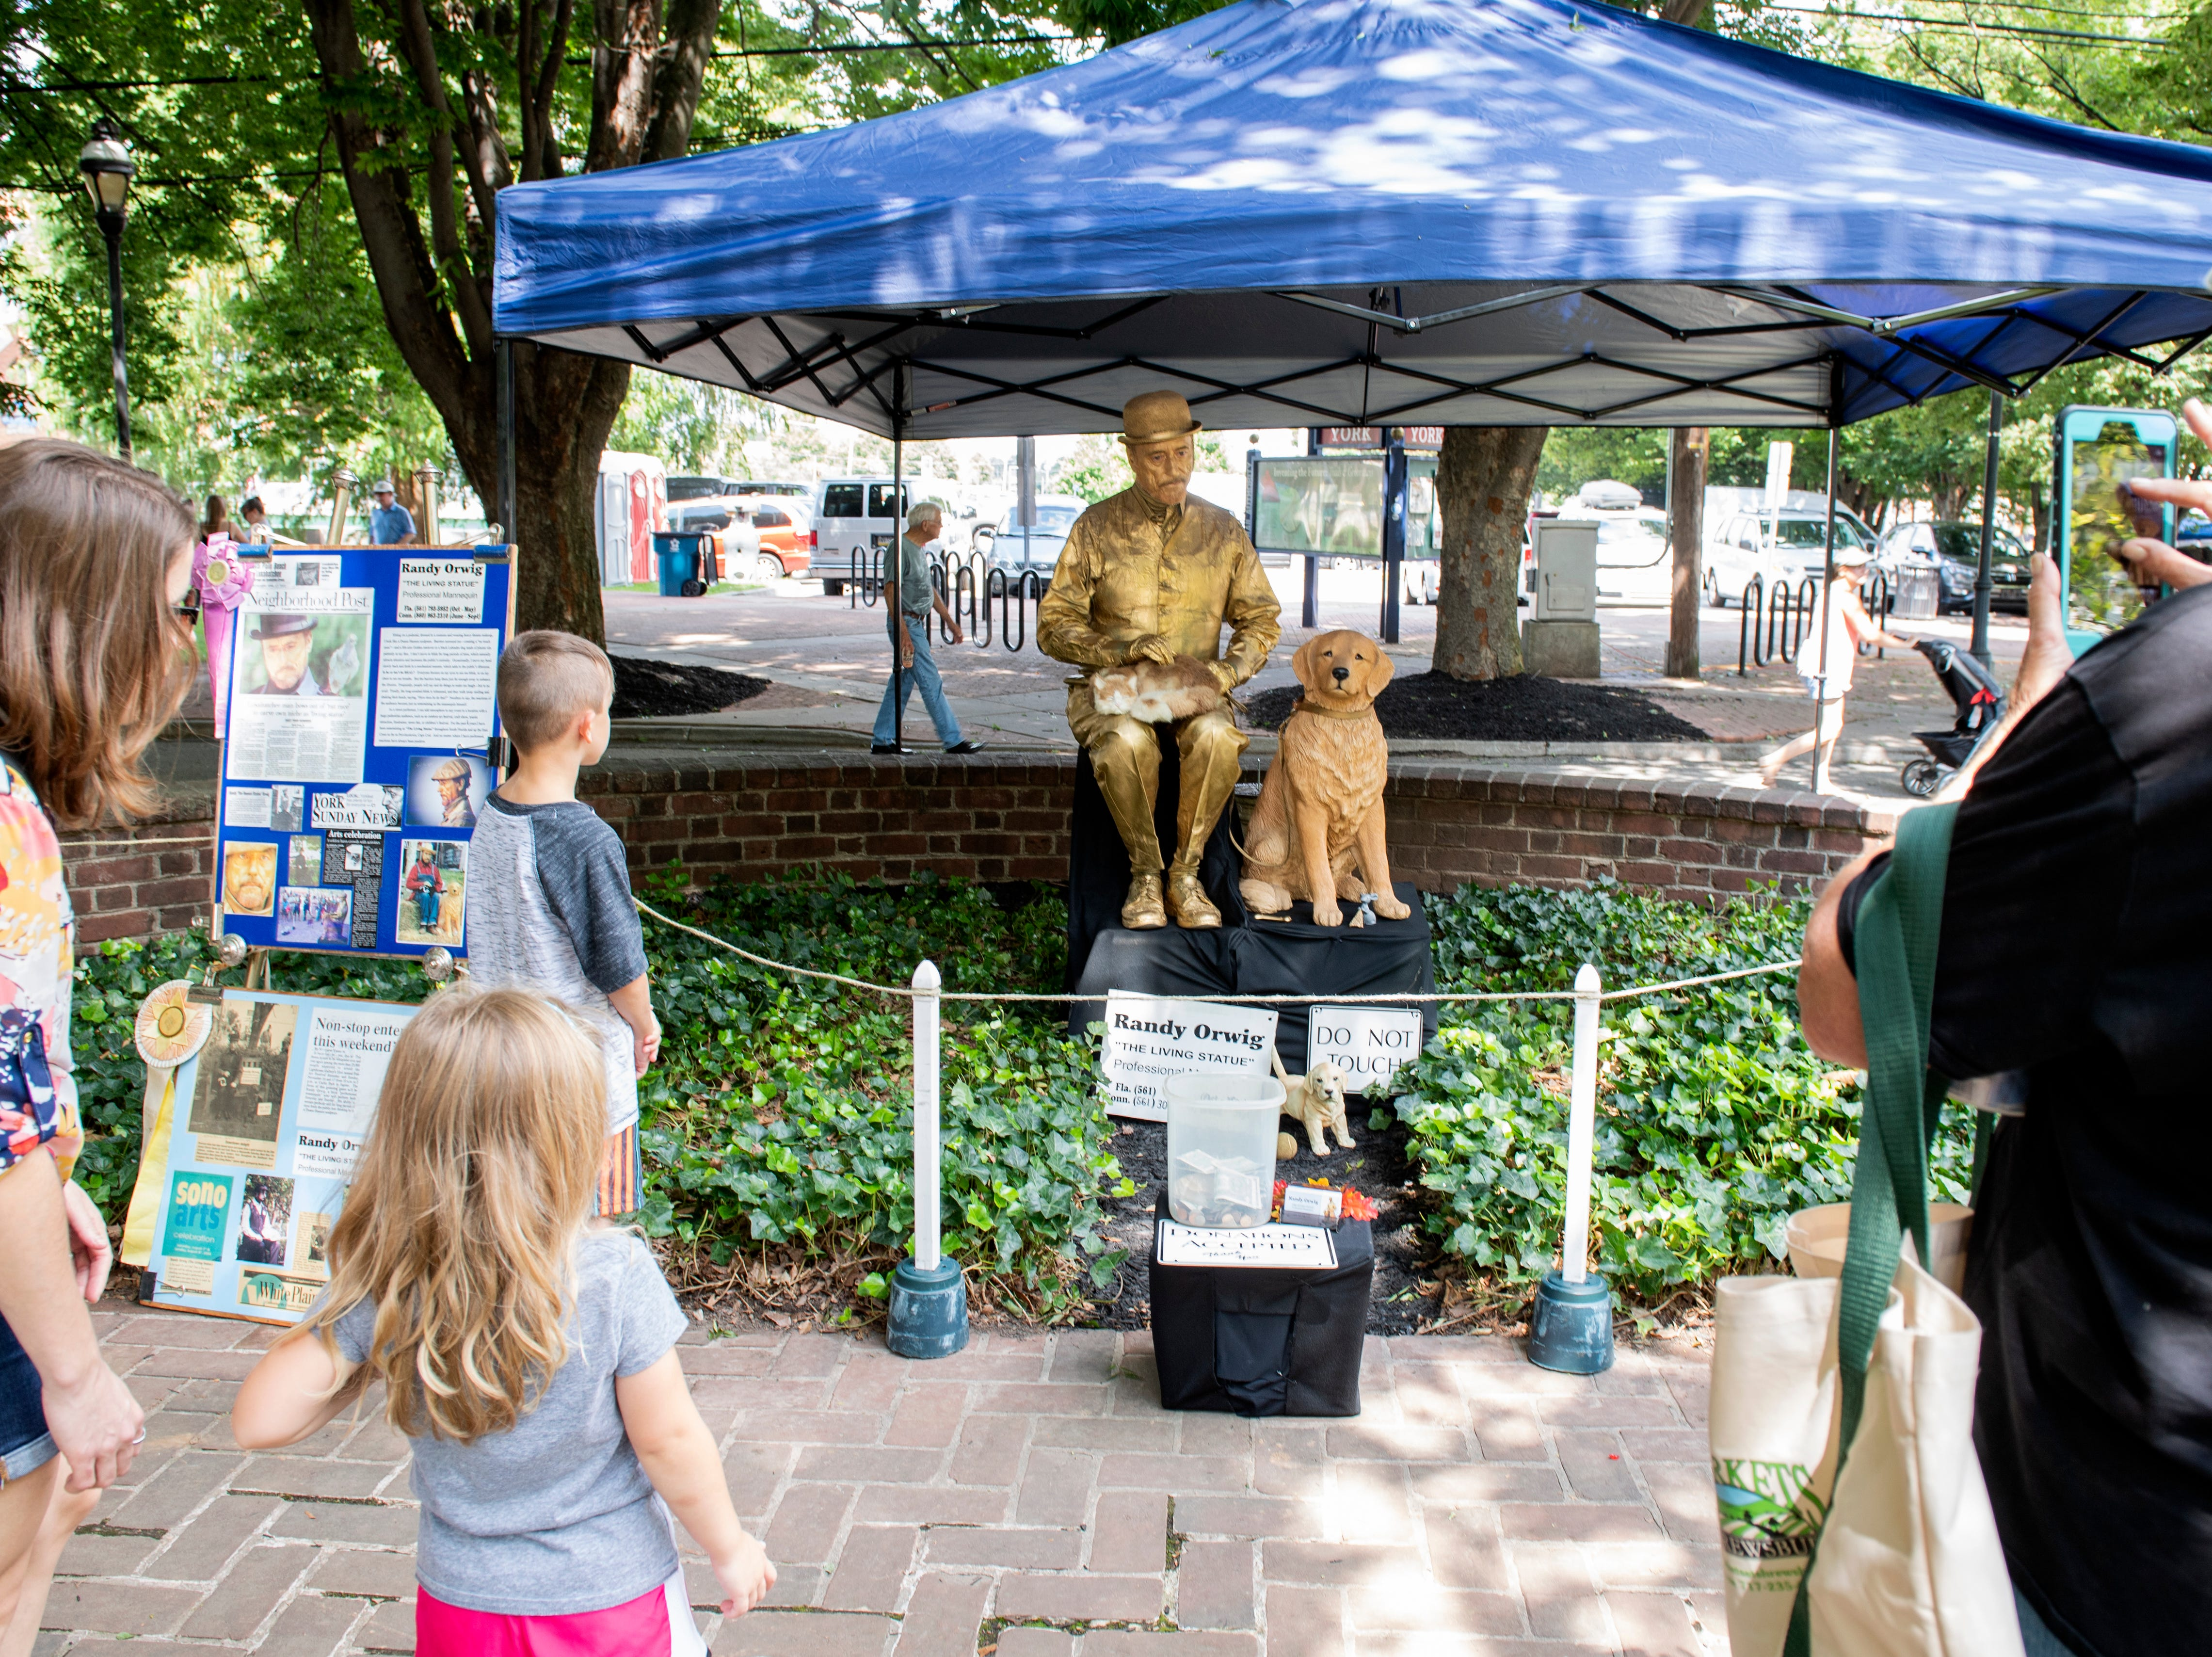 Randy Orwig, 'the living statue,' performs in front of passersby at Yorkfest, Saturday, Aug. 25, 2018. The art festival continues through Sunday, hosting over 100 artists along the Codorus Creek.